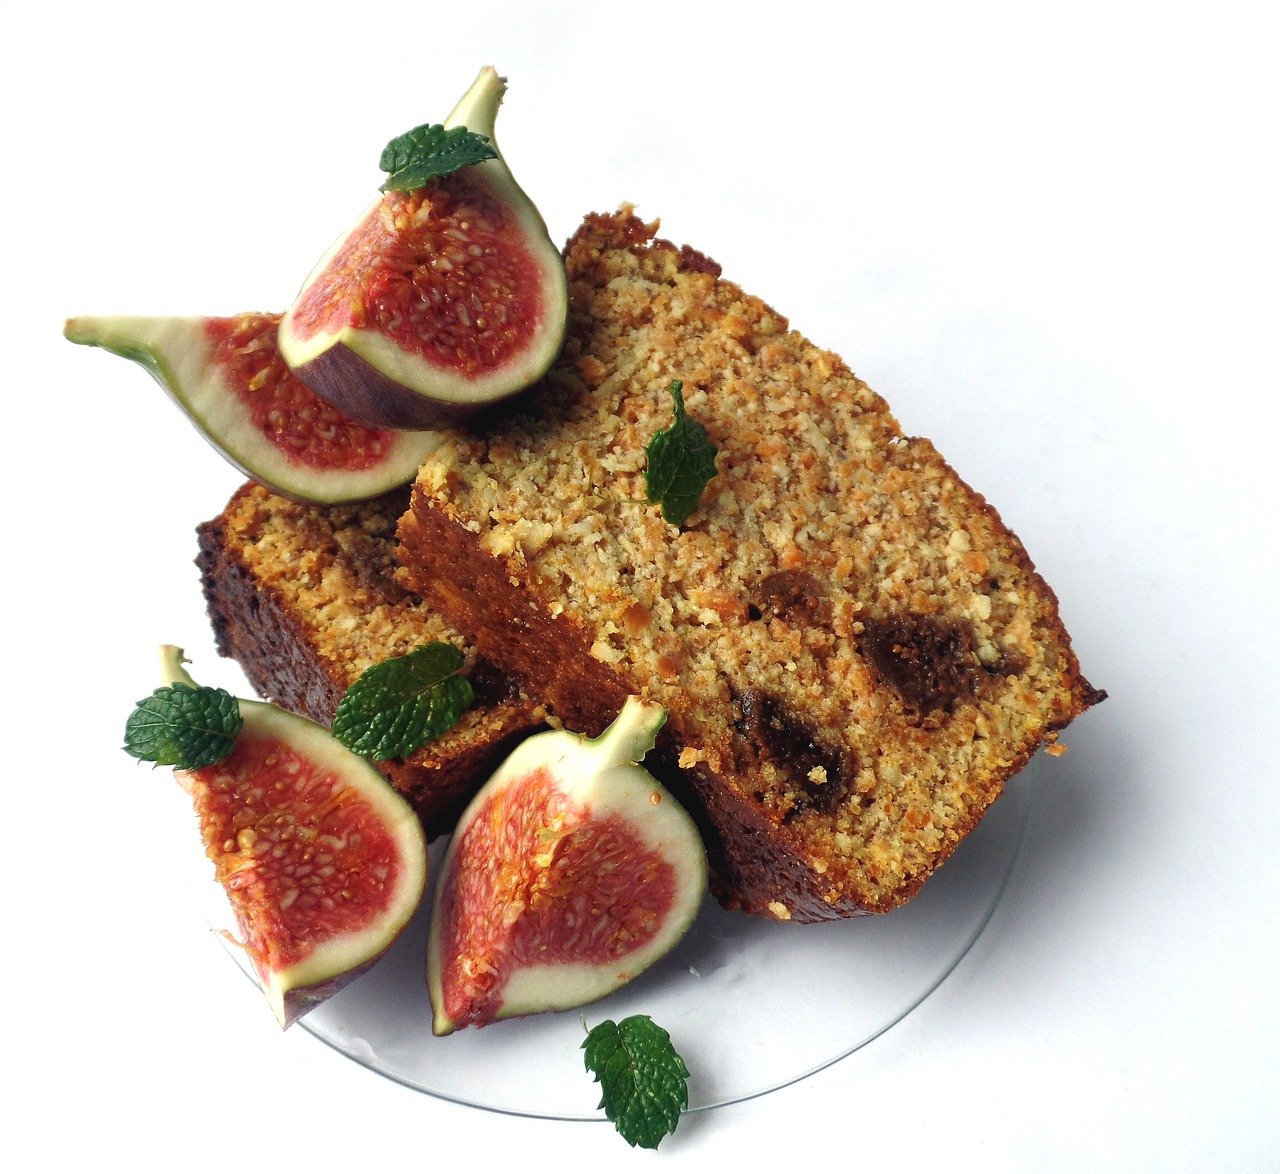 Benefits of figs: Figs play an important role in improving the overall tone and texture of your skin.